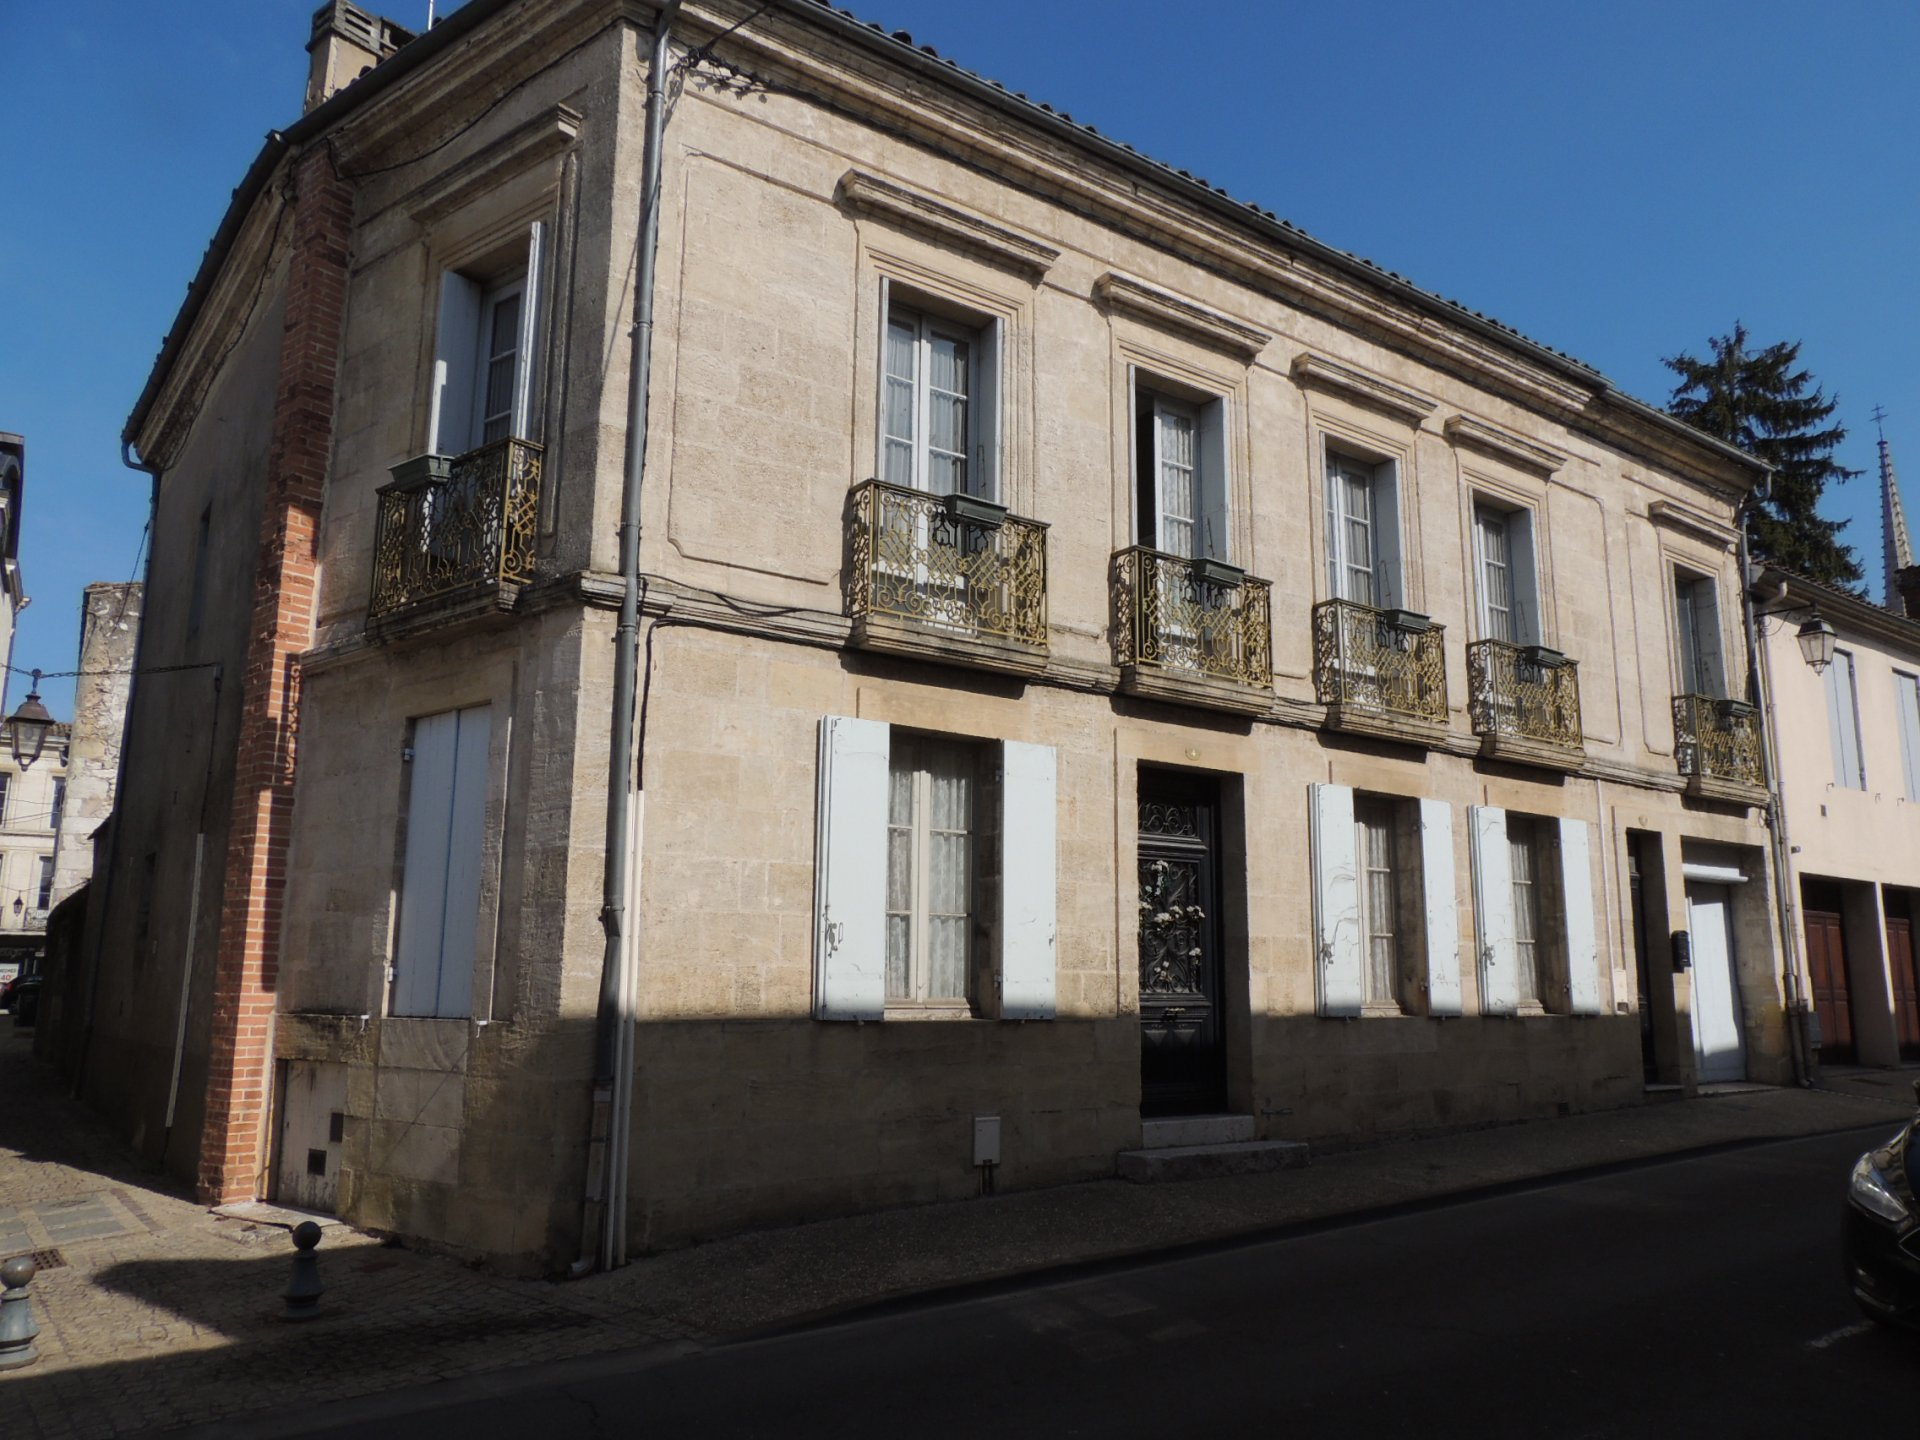 4/5 bedroom townhouse with garden, summerhouse and separate apartment